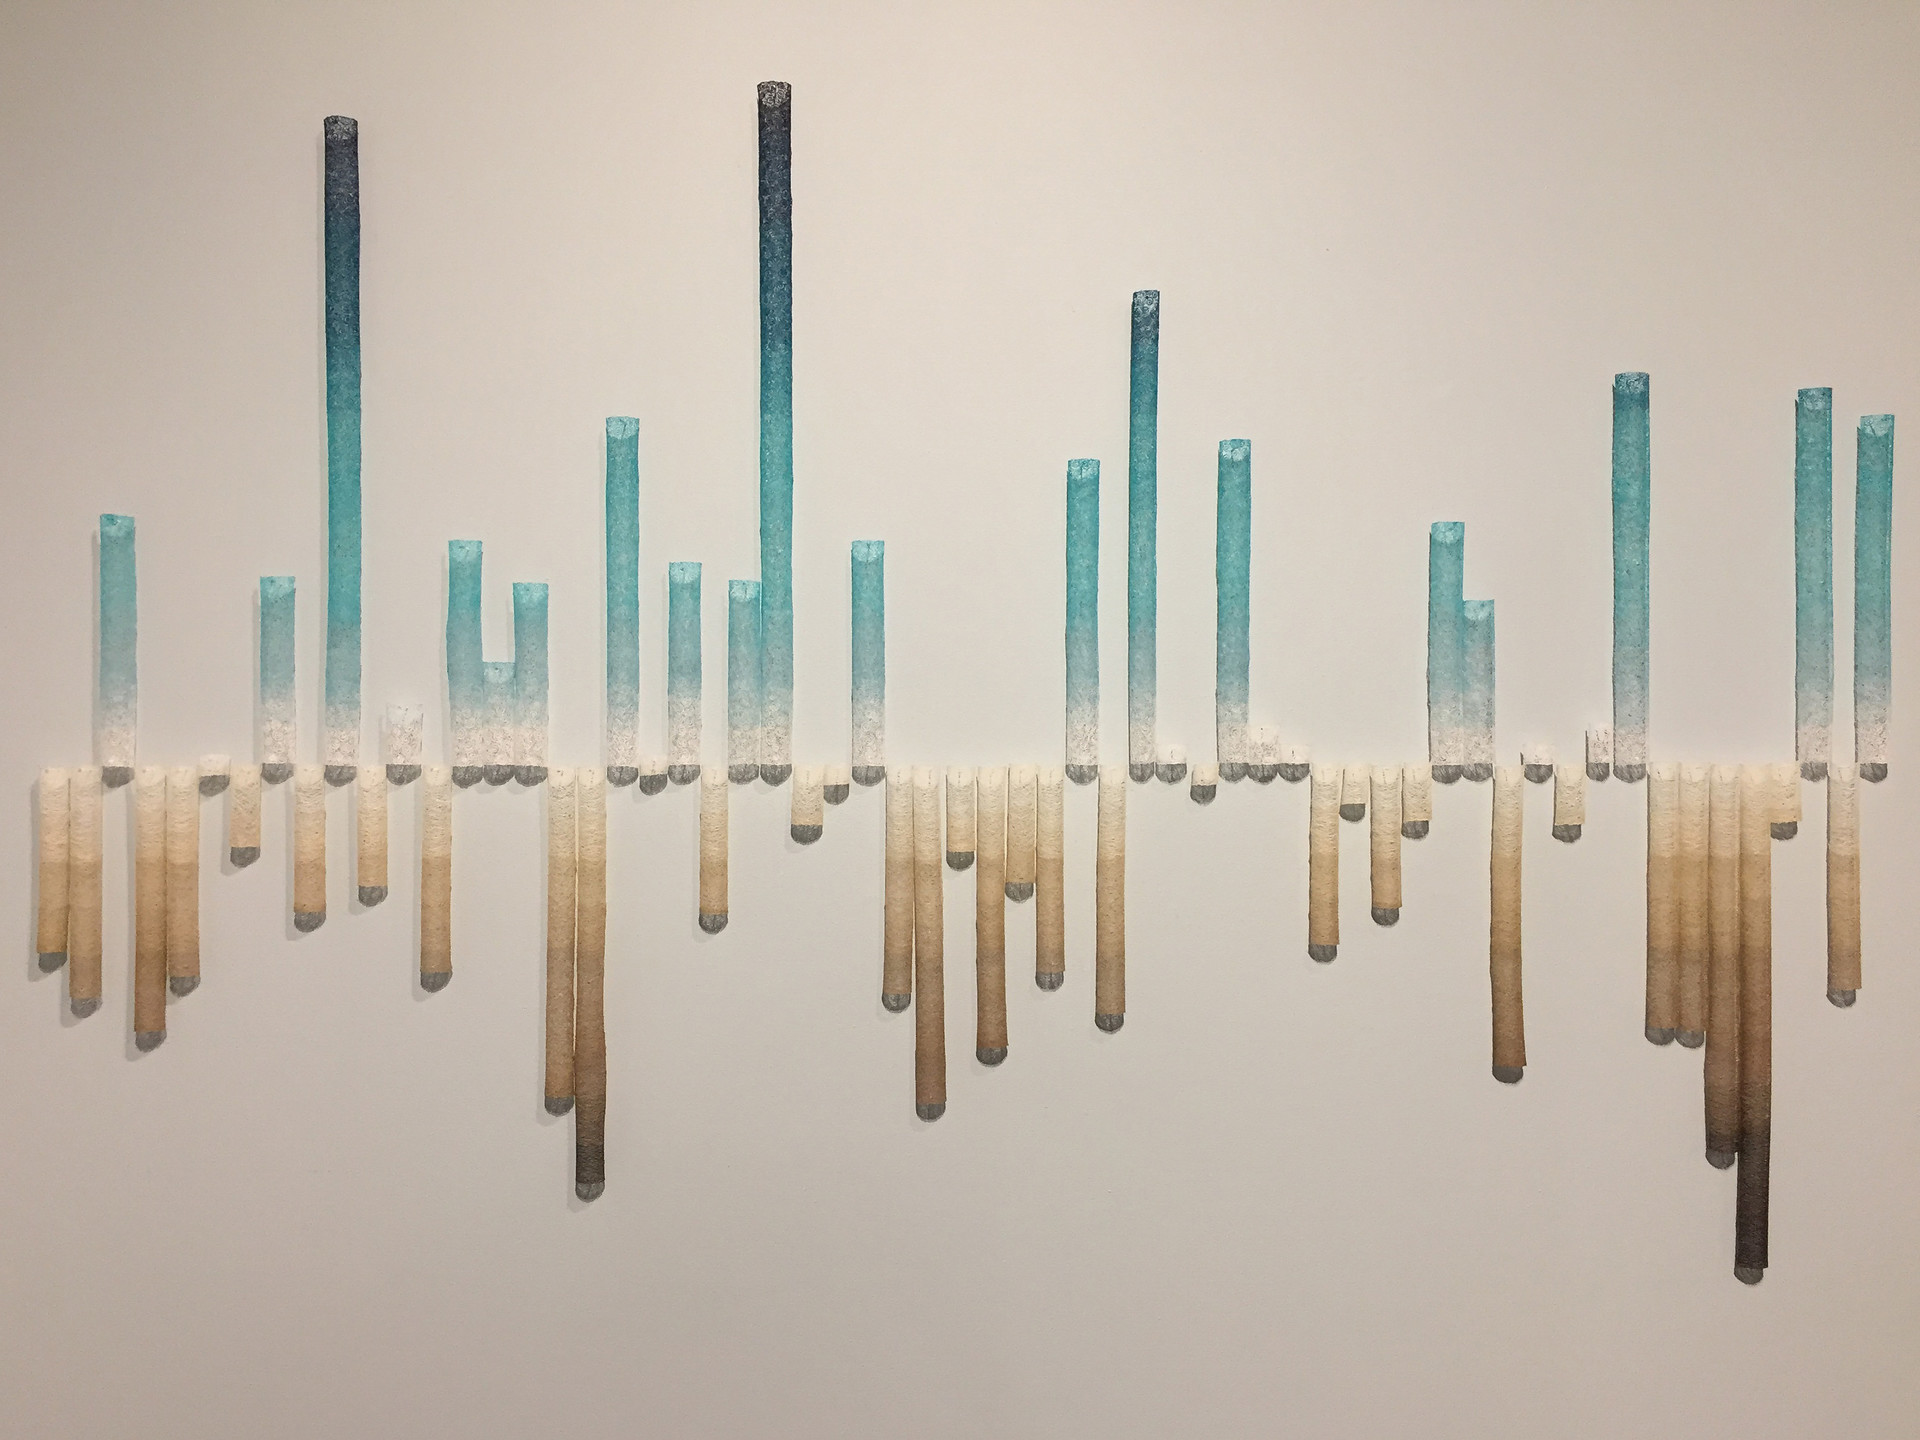 "Some day there may be no more snow: California snowpack 1959 – 2019, by Linda Gass; thread lace installation (Cotton, rayon and clear polyester monofilament thread, dissolvable stabilizer, fabric stiffener, magnets, nails). Part of the exhibition ""And Then This Happened..."" at the Museum of Craft and Design in San Francisco."